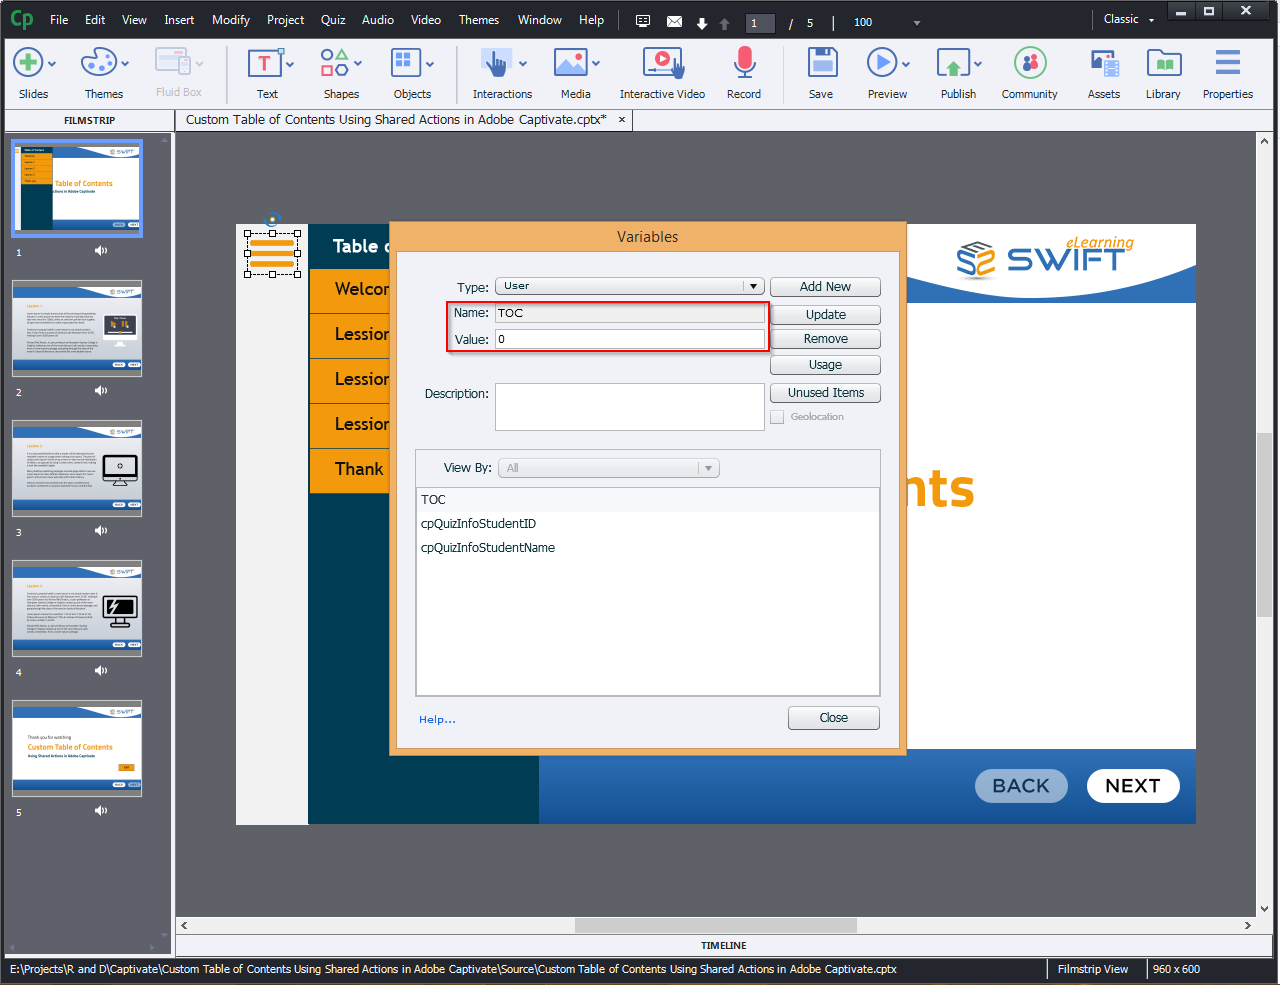 Contents Using Shared Actions in Adobe Captivate 2019 3